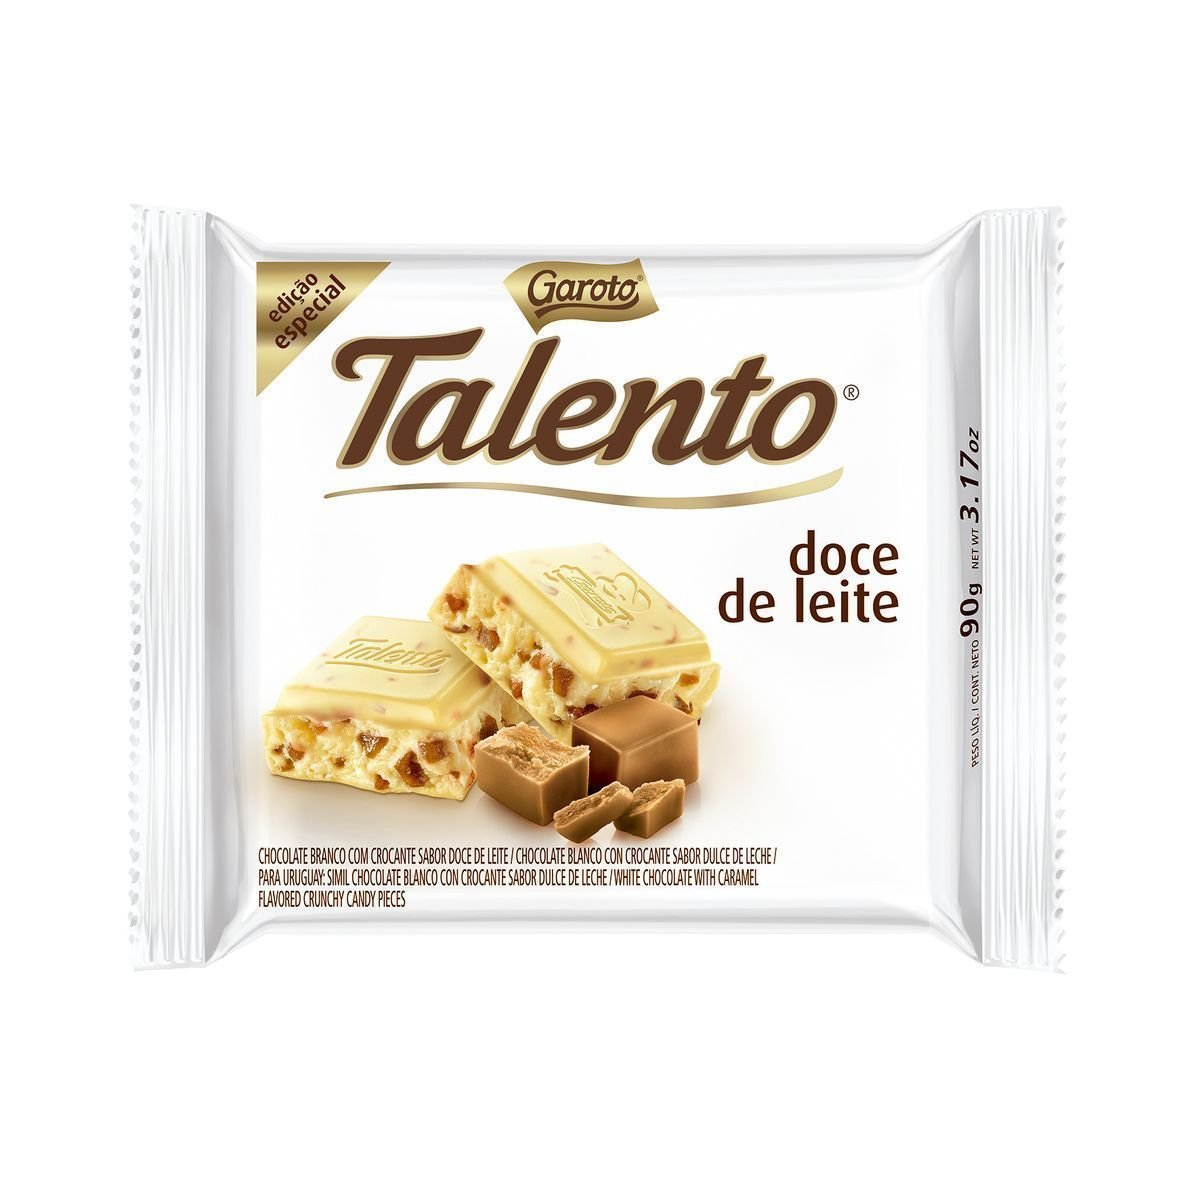 Amazon.com : Garoto - Talento - Dulce de Leche - 3.53 Oz (PACK OF 12) | Doce de leite - 100g : Grocery & Gourmet Food